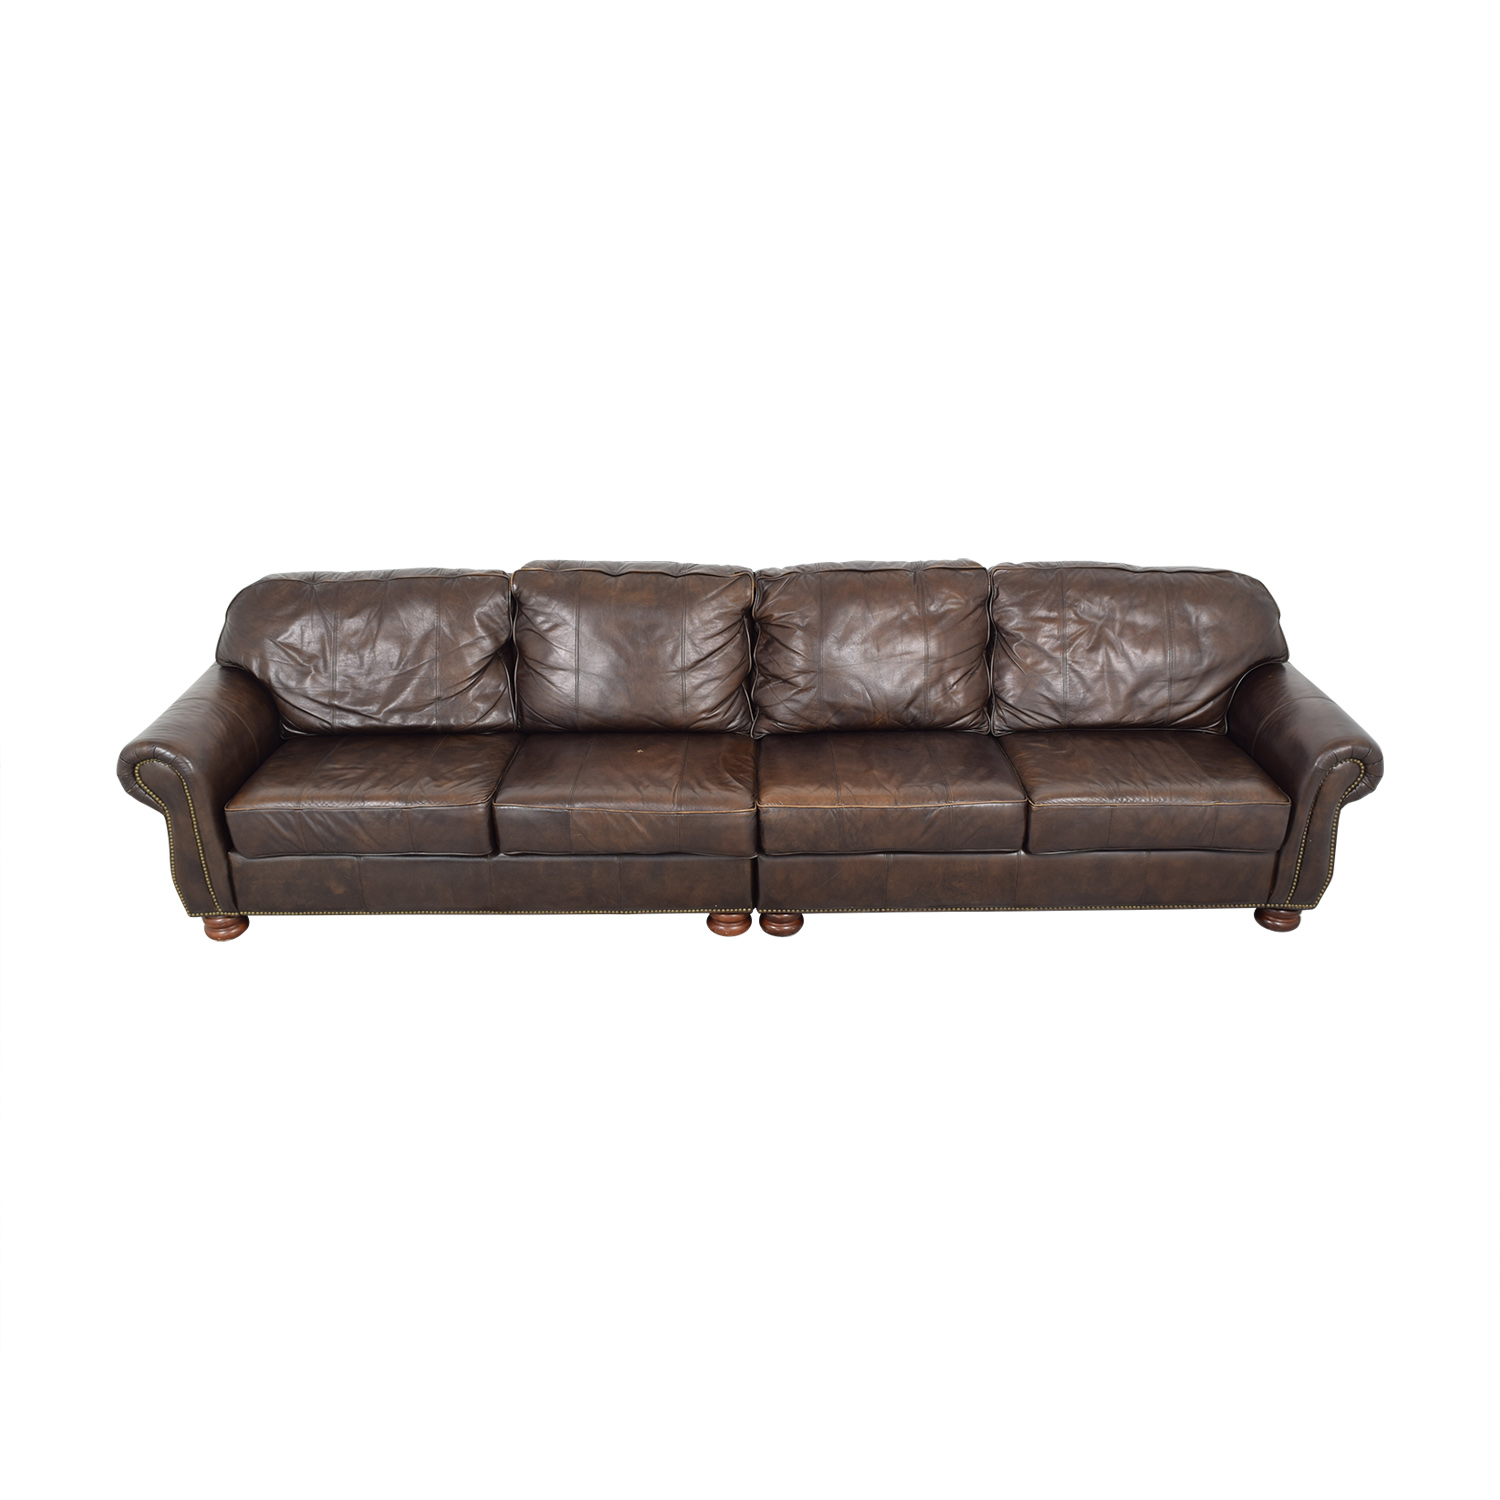 Thomasville Thomasville Two Section Four Seat Sofa second hand